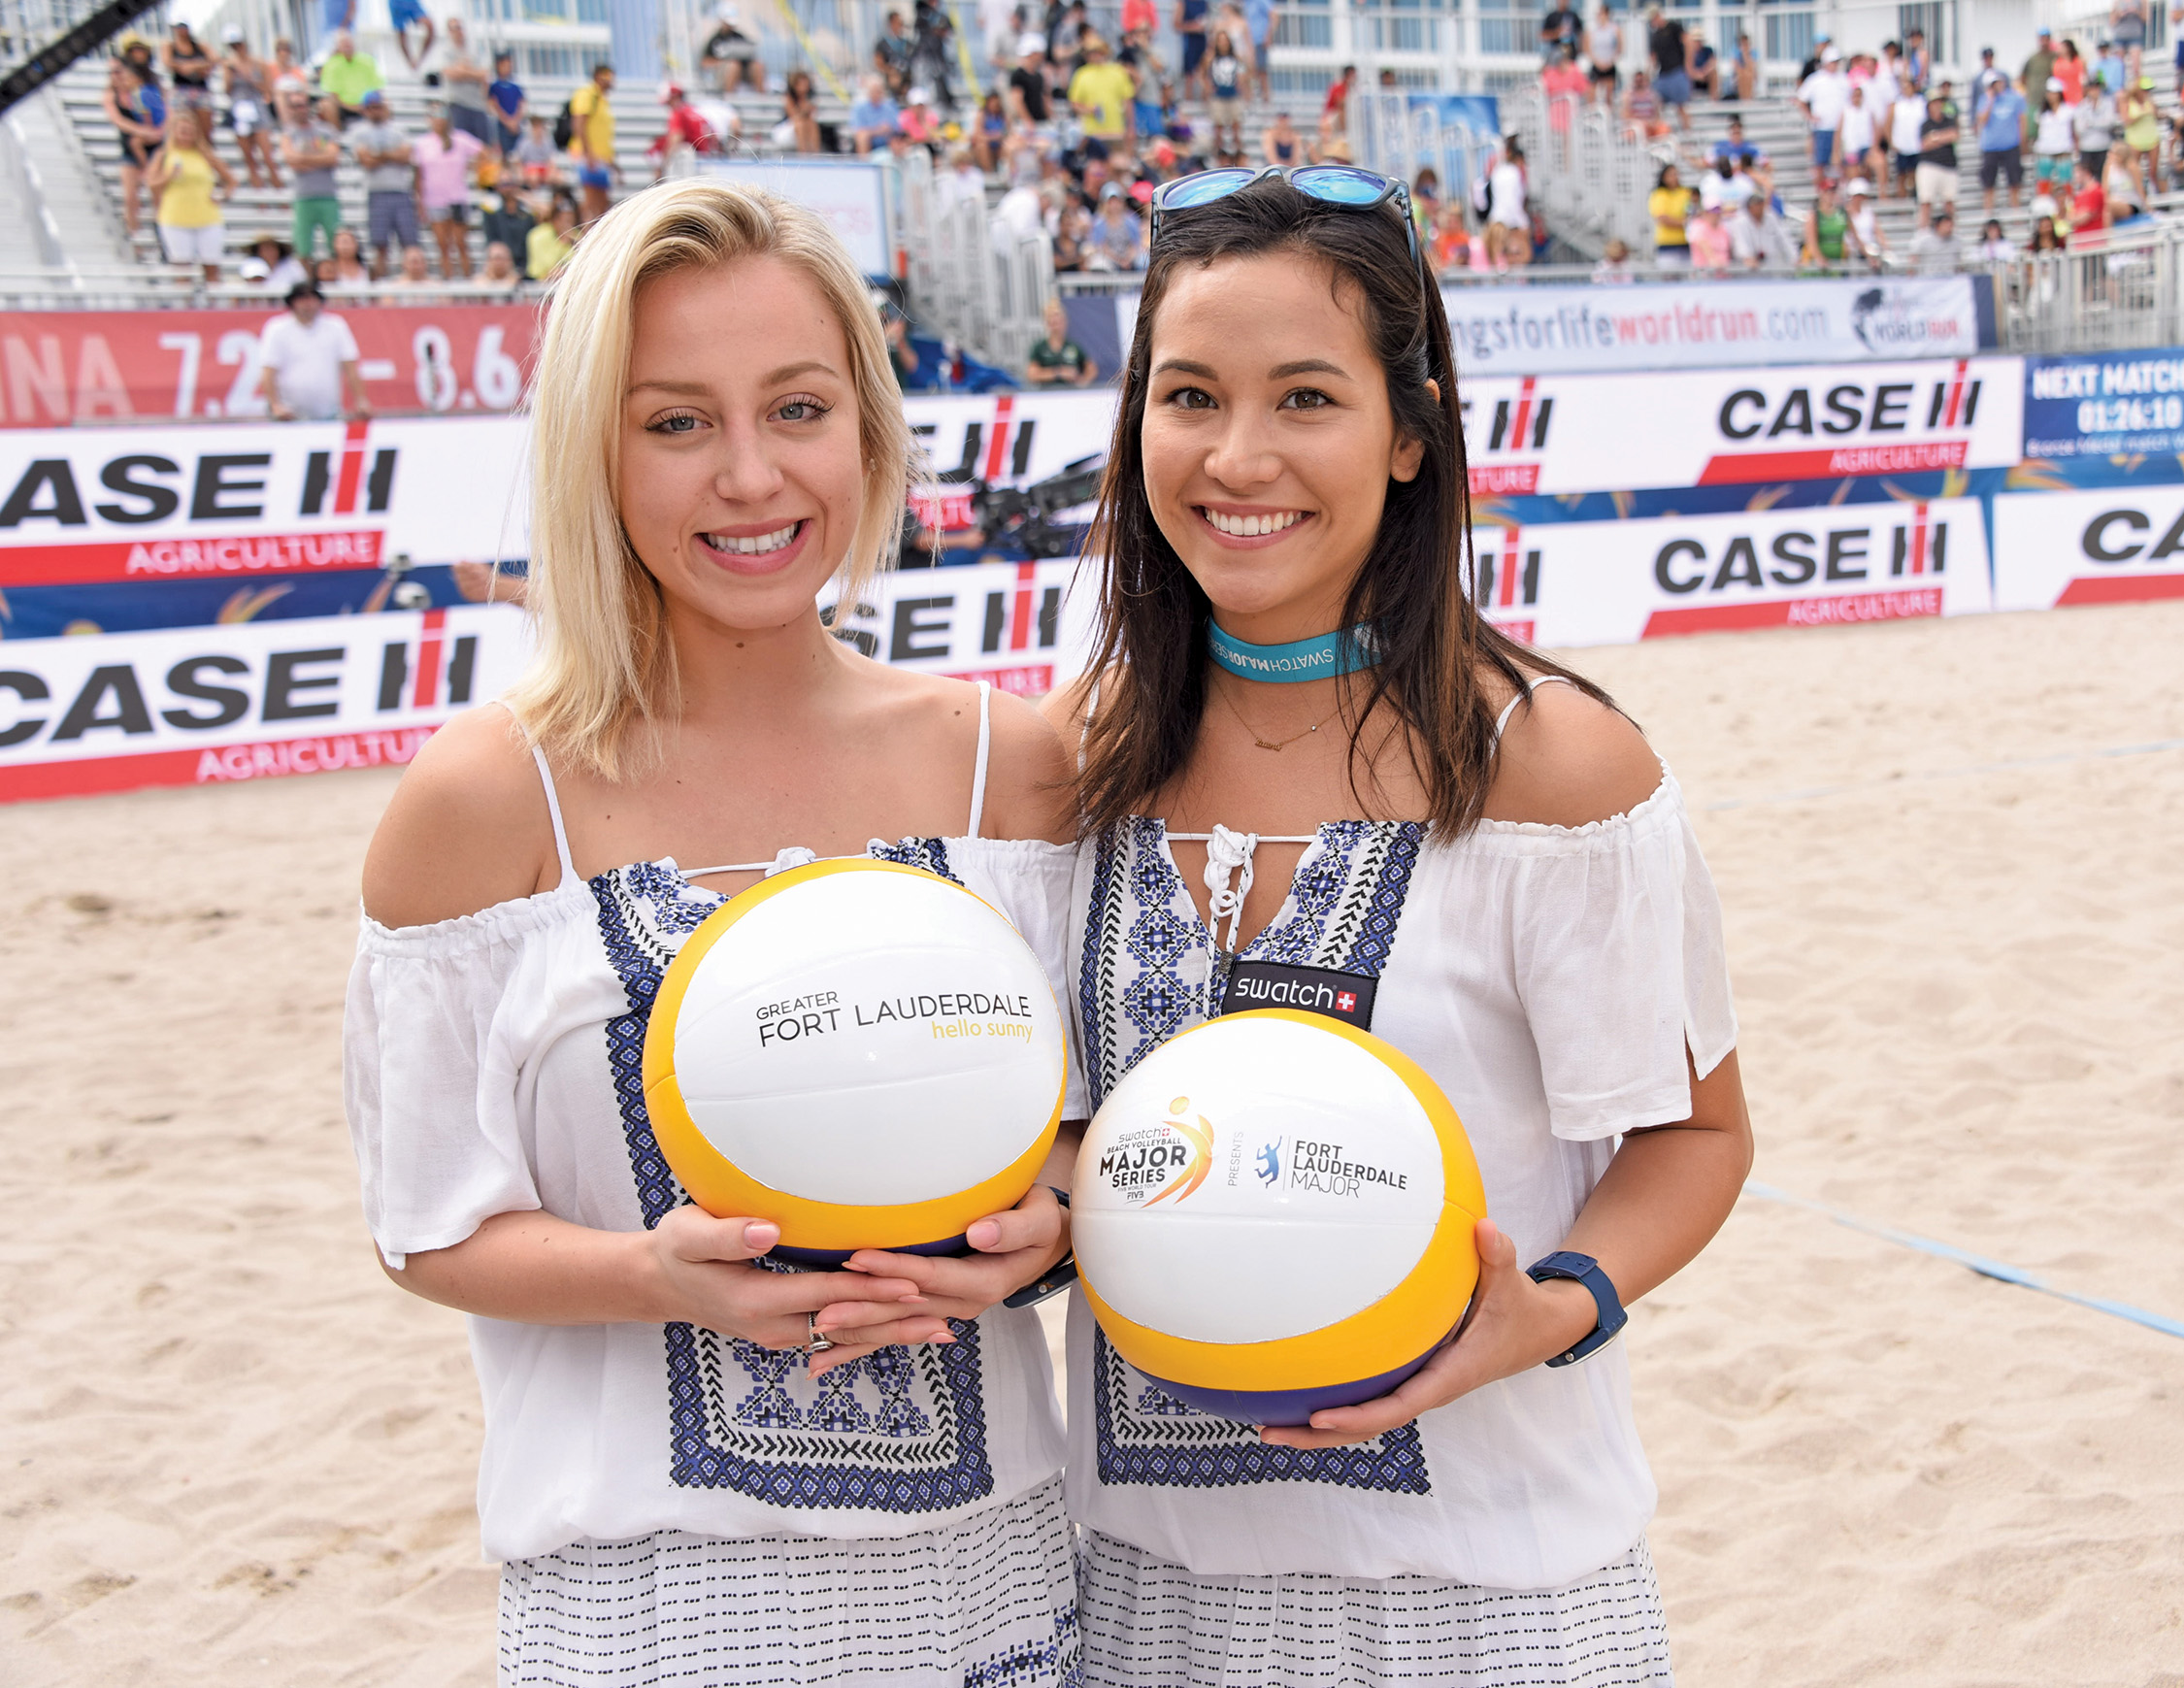 Michele-Eve-Sandberg-The-Seen-Swatch-Major-Series-Beach-Volleyball-FIVB-Olympians-Venice-Magazine-Fort-Lauderdale-Beach